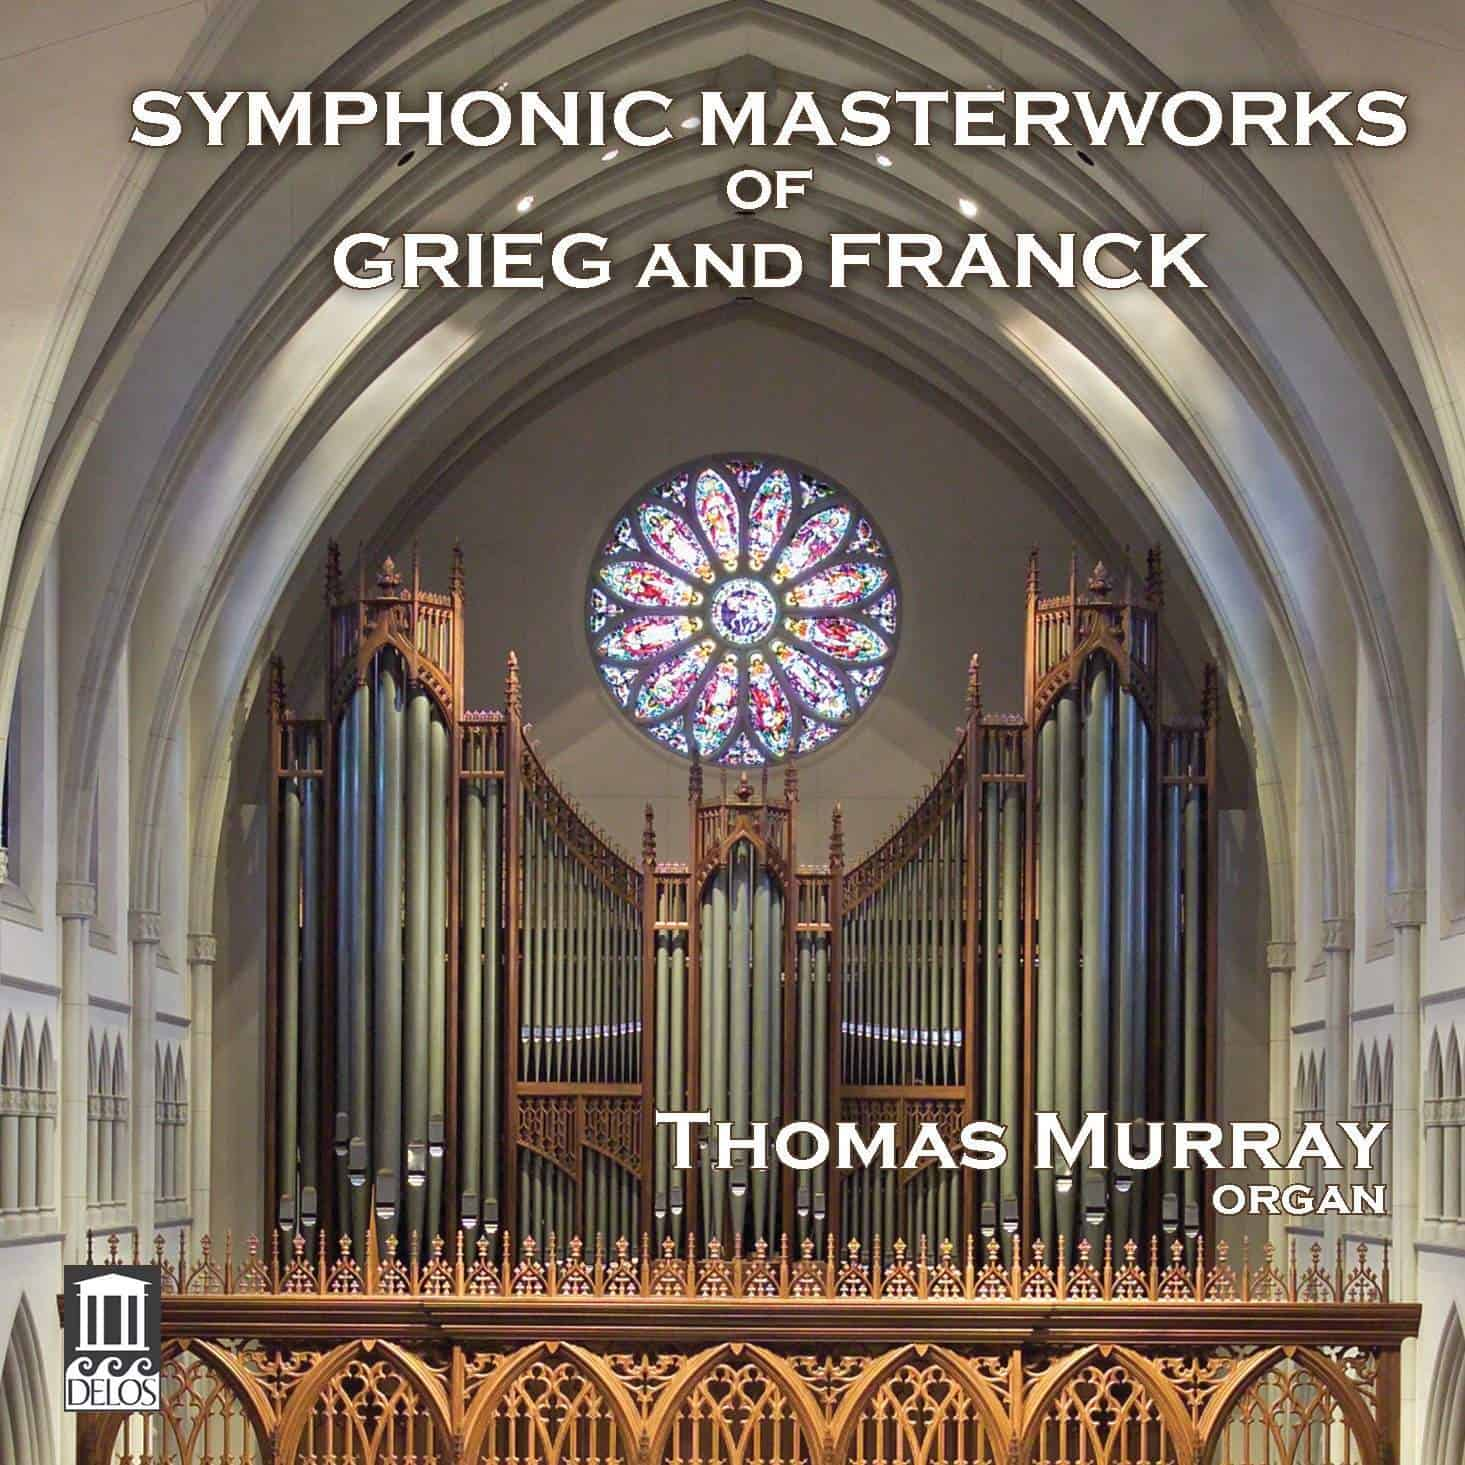 Symphonic Masterworks of Grieg and Franck